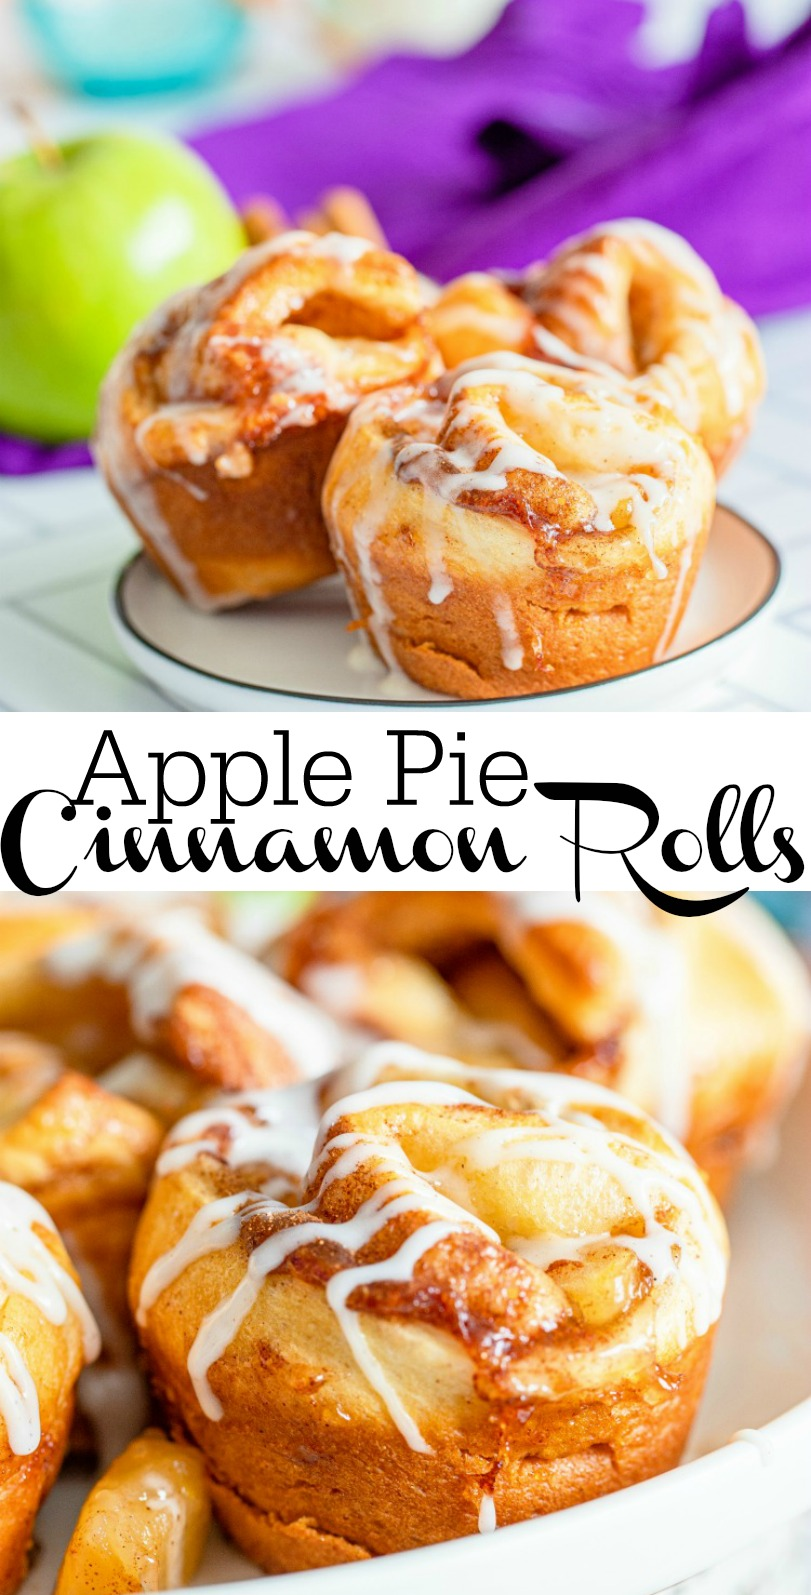 Easy Apple Pie Cinnamon Rolls made with Crescent Dough